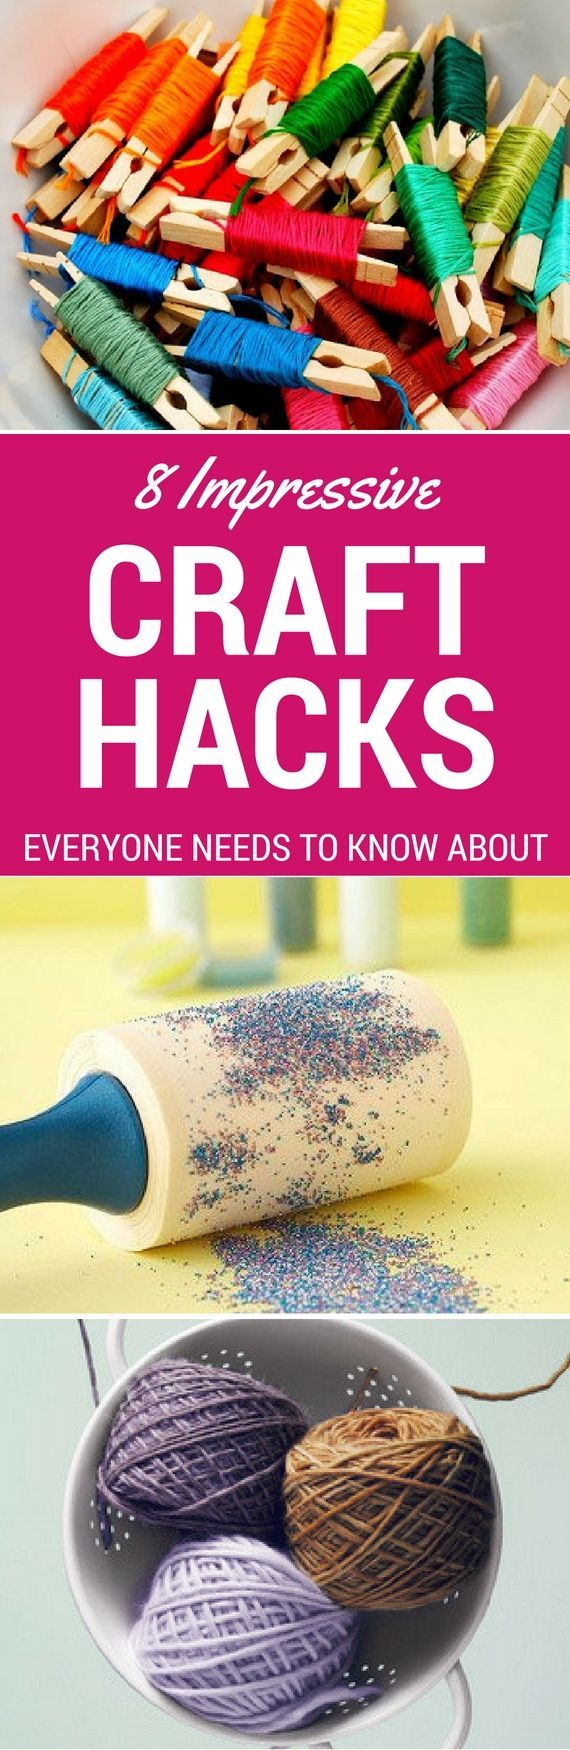 8 Incredible Diy Craft Hacks You're Missing Out On Yarn Storageembroidery